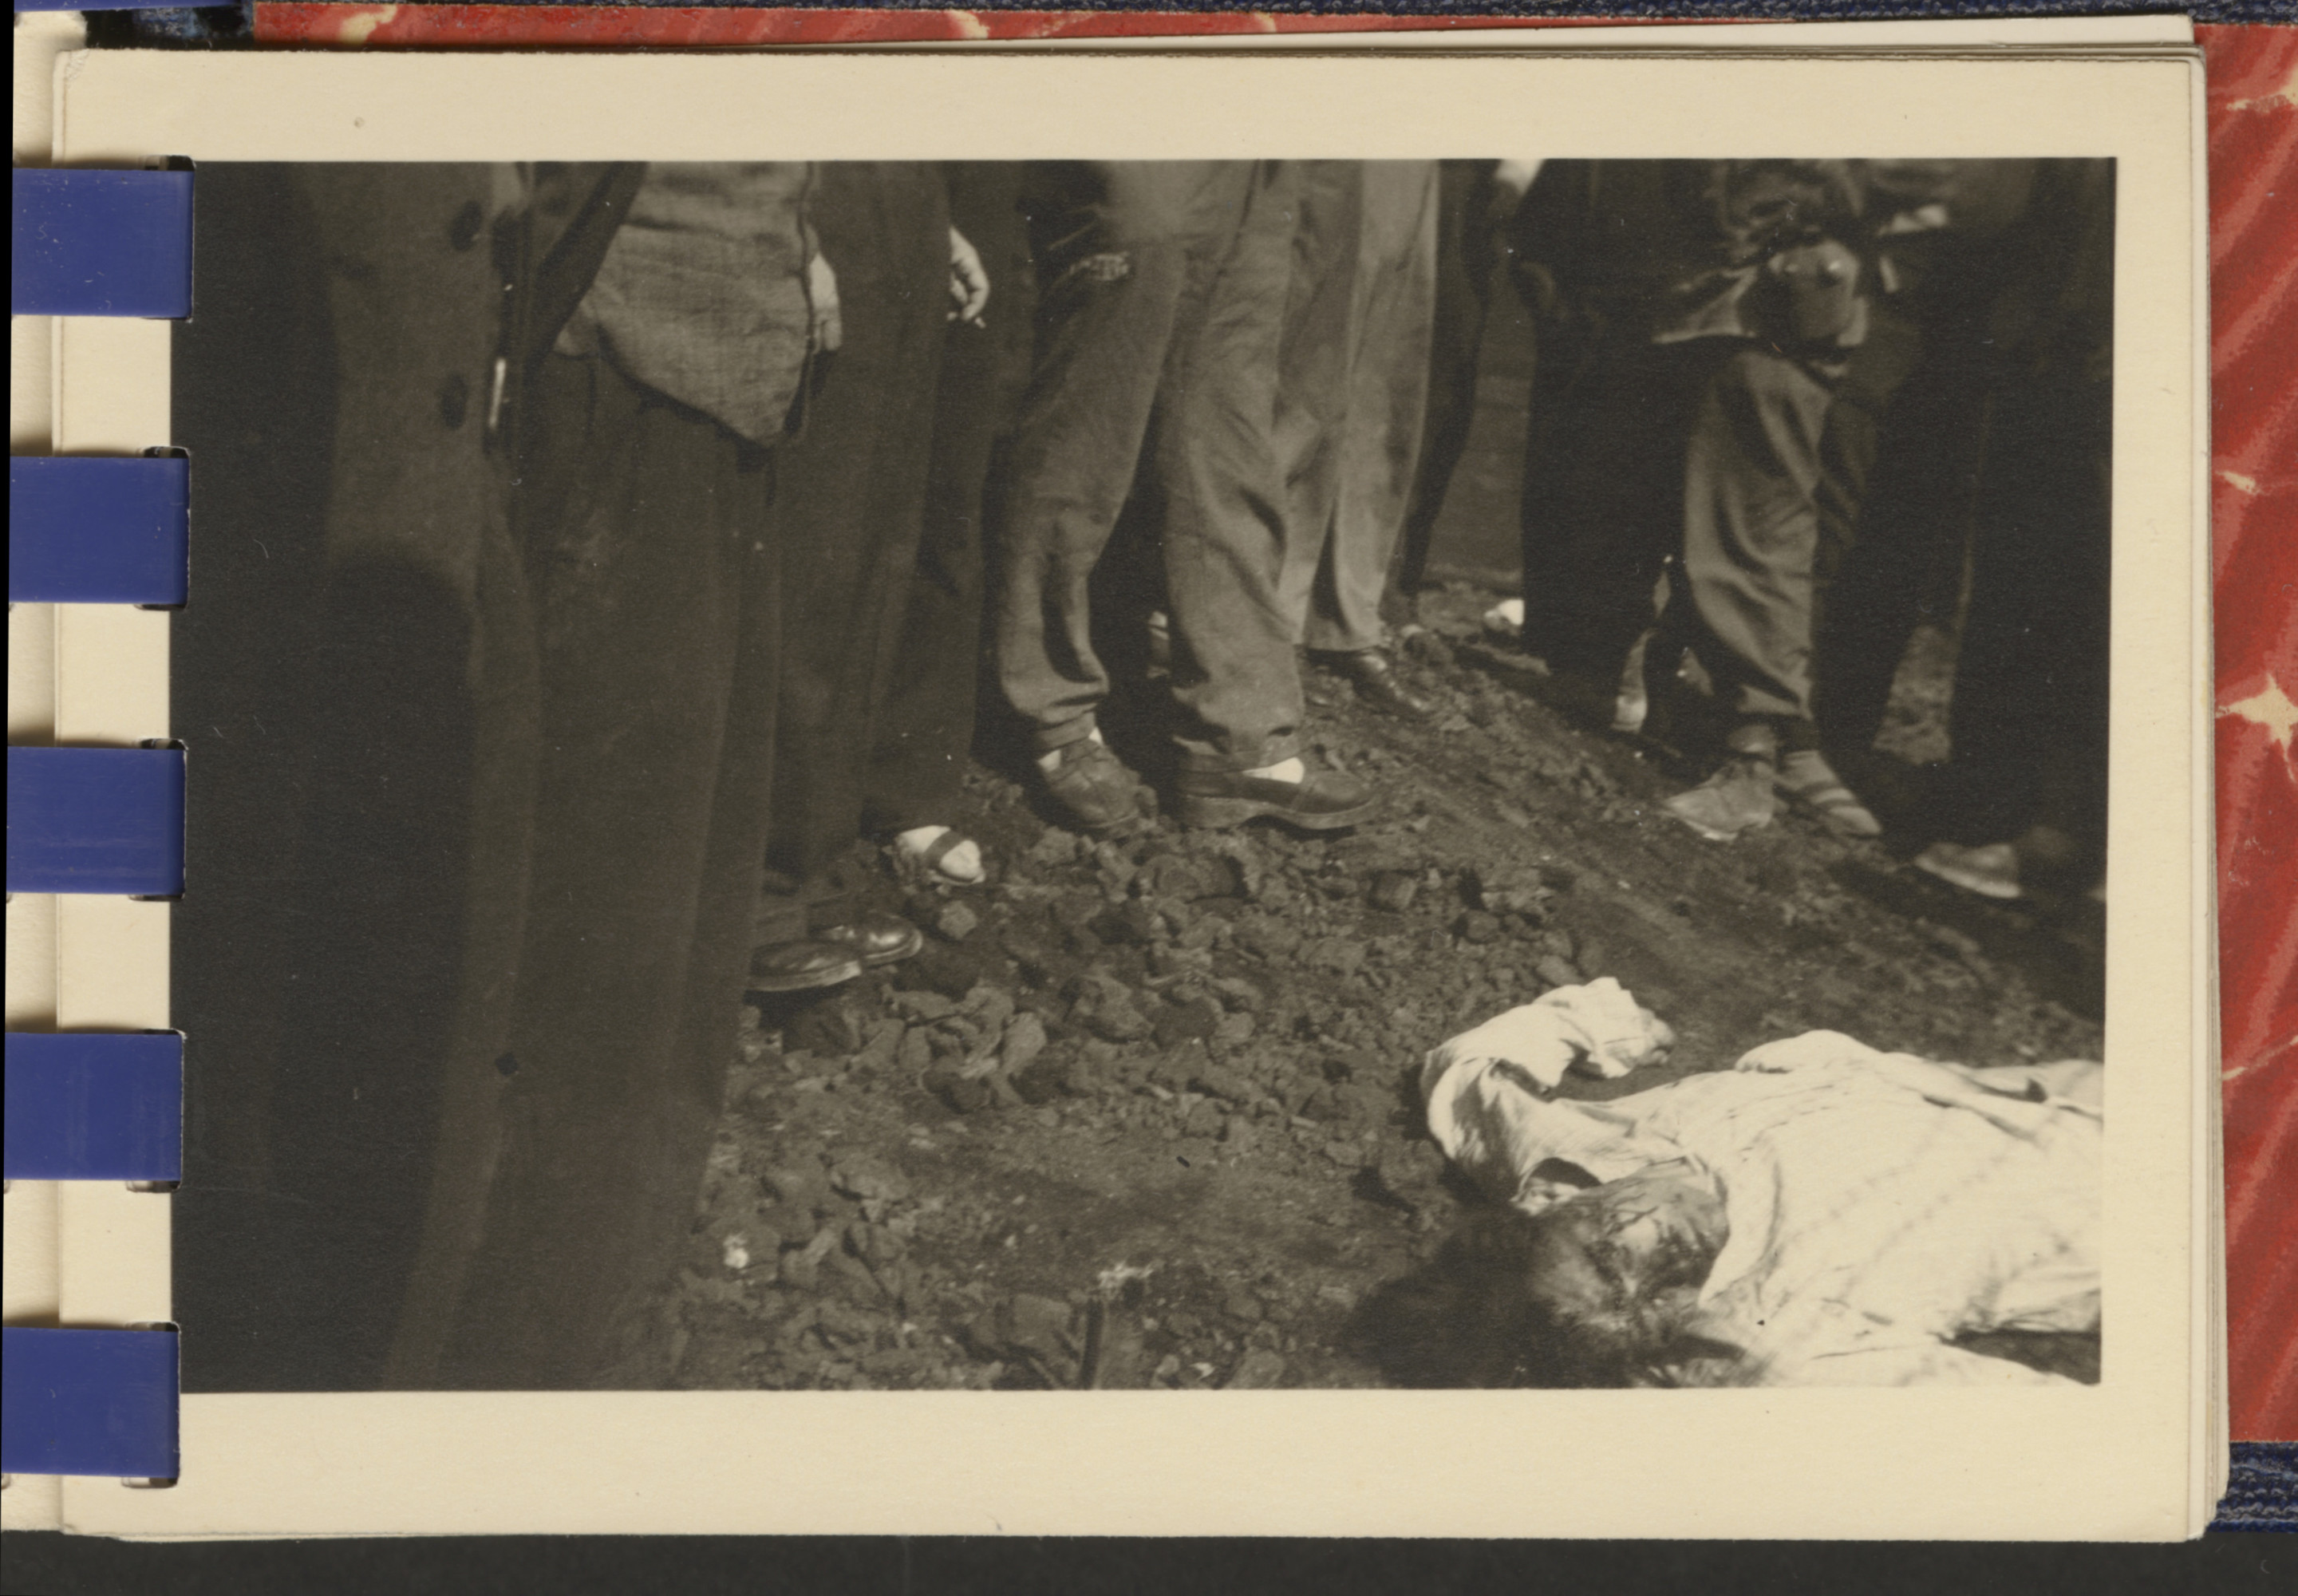 One page from a small photograph booklet containing images of Bergen-Belsen shortly after liberation.  British soldiers view the corpse of an unknown individual.